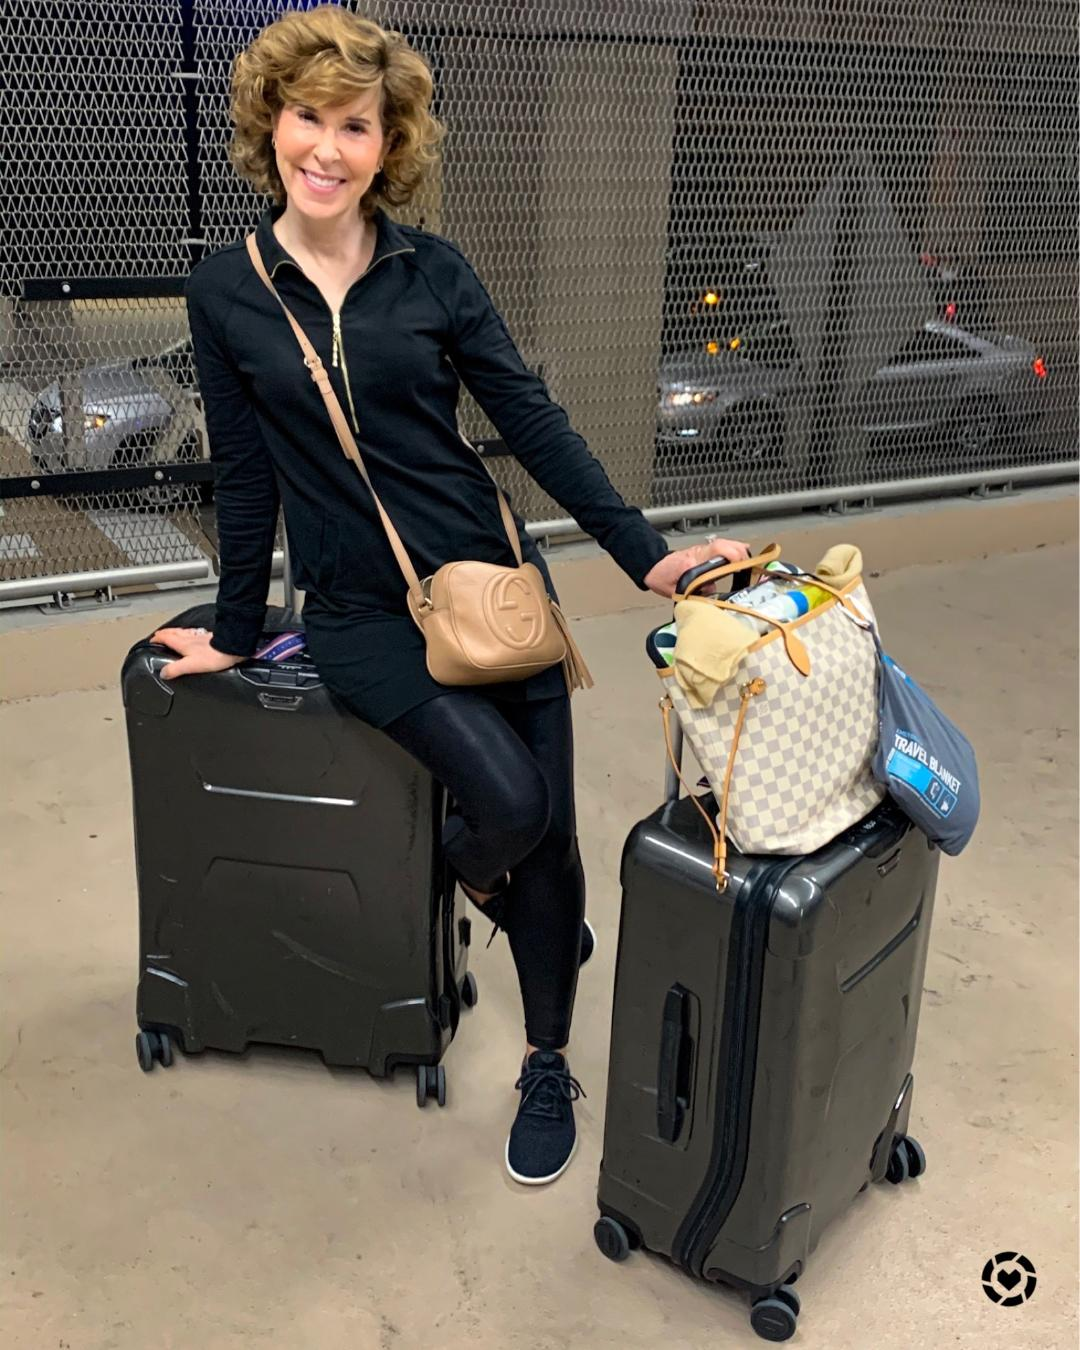 woman wearing black with suitcases at an airport